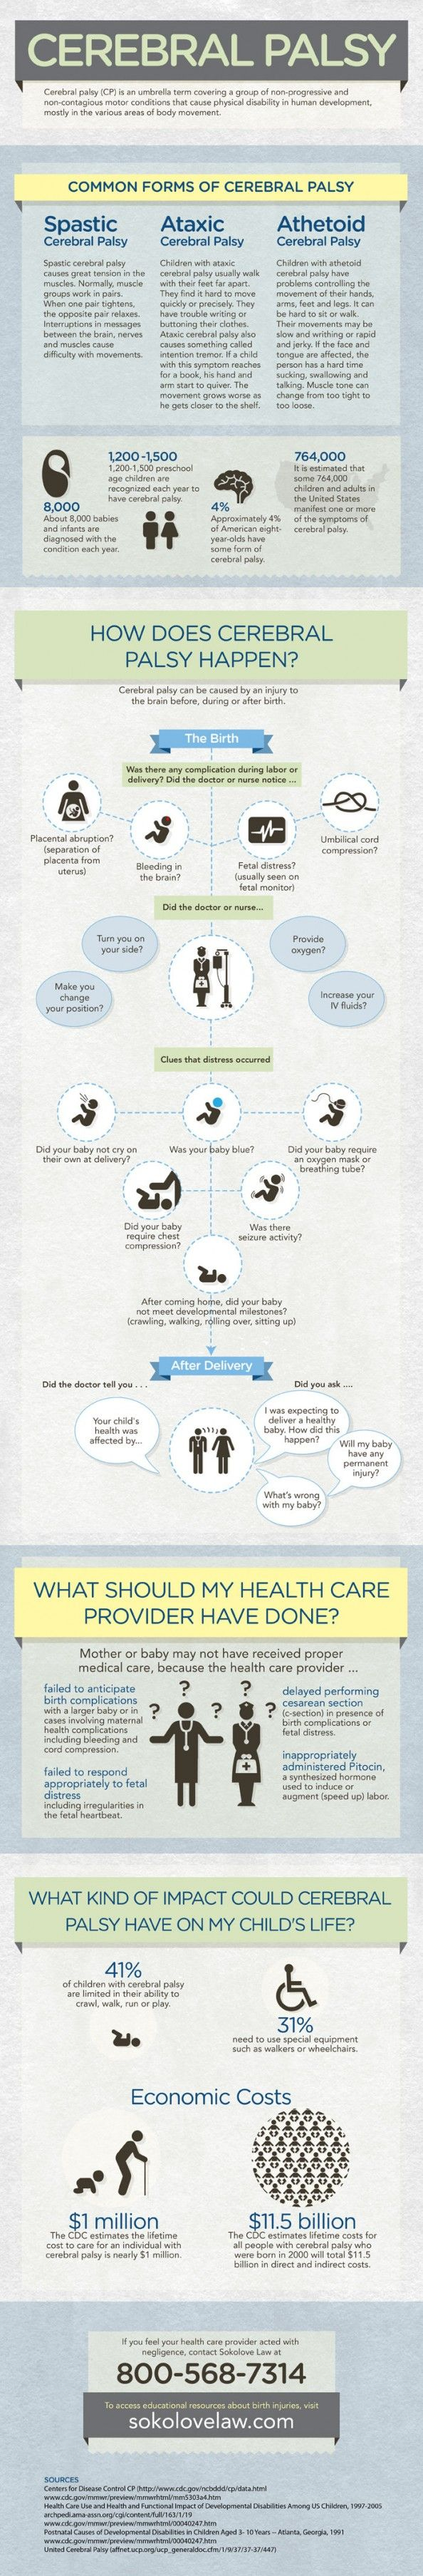 Cerebral Palsy Infographic Infographic